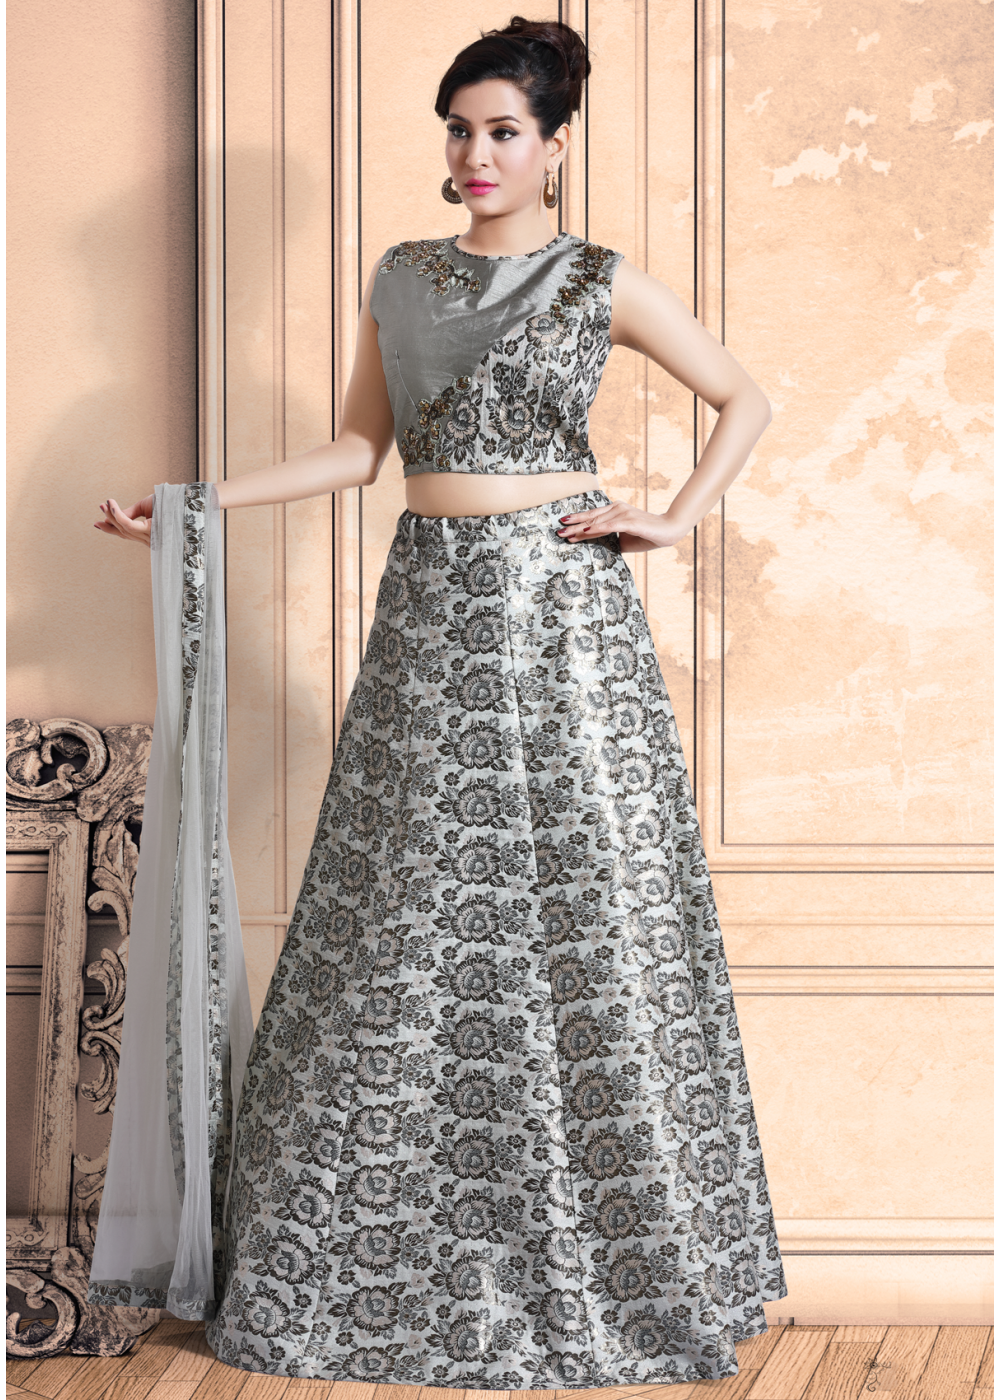 83baac30c6 Silver Grey Color Party Wear Lehenga Choli